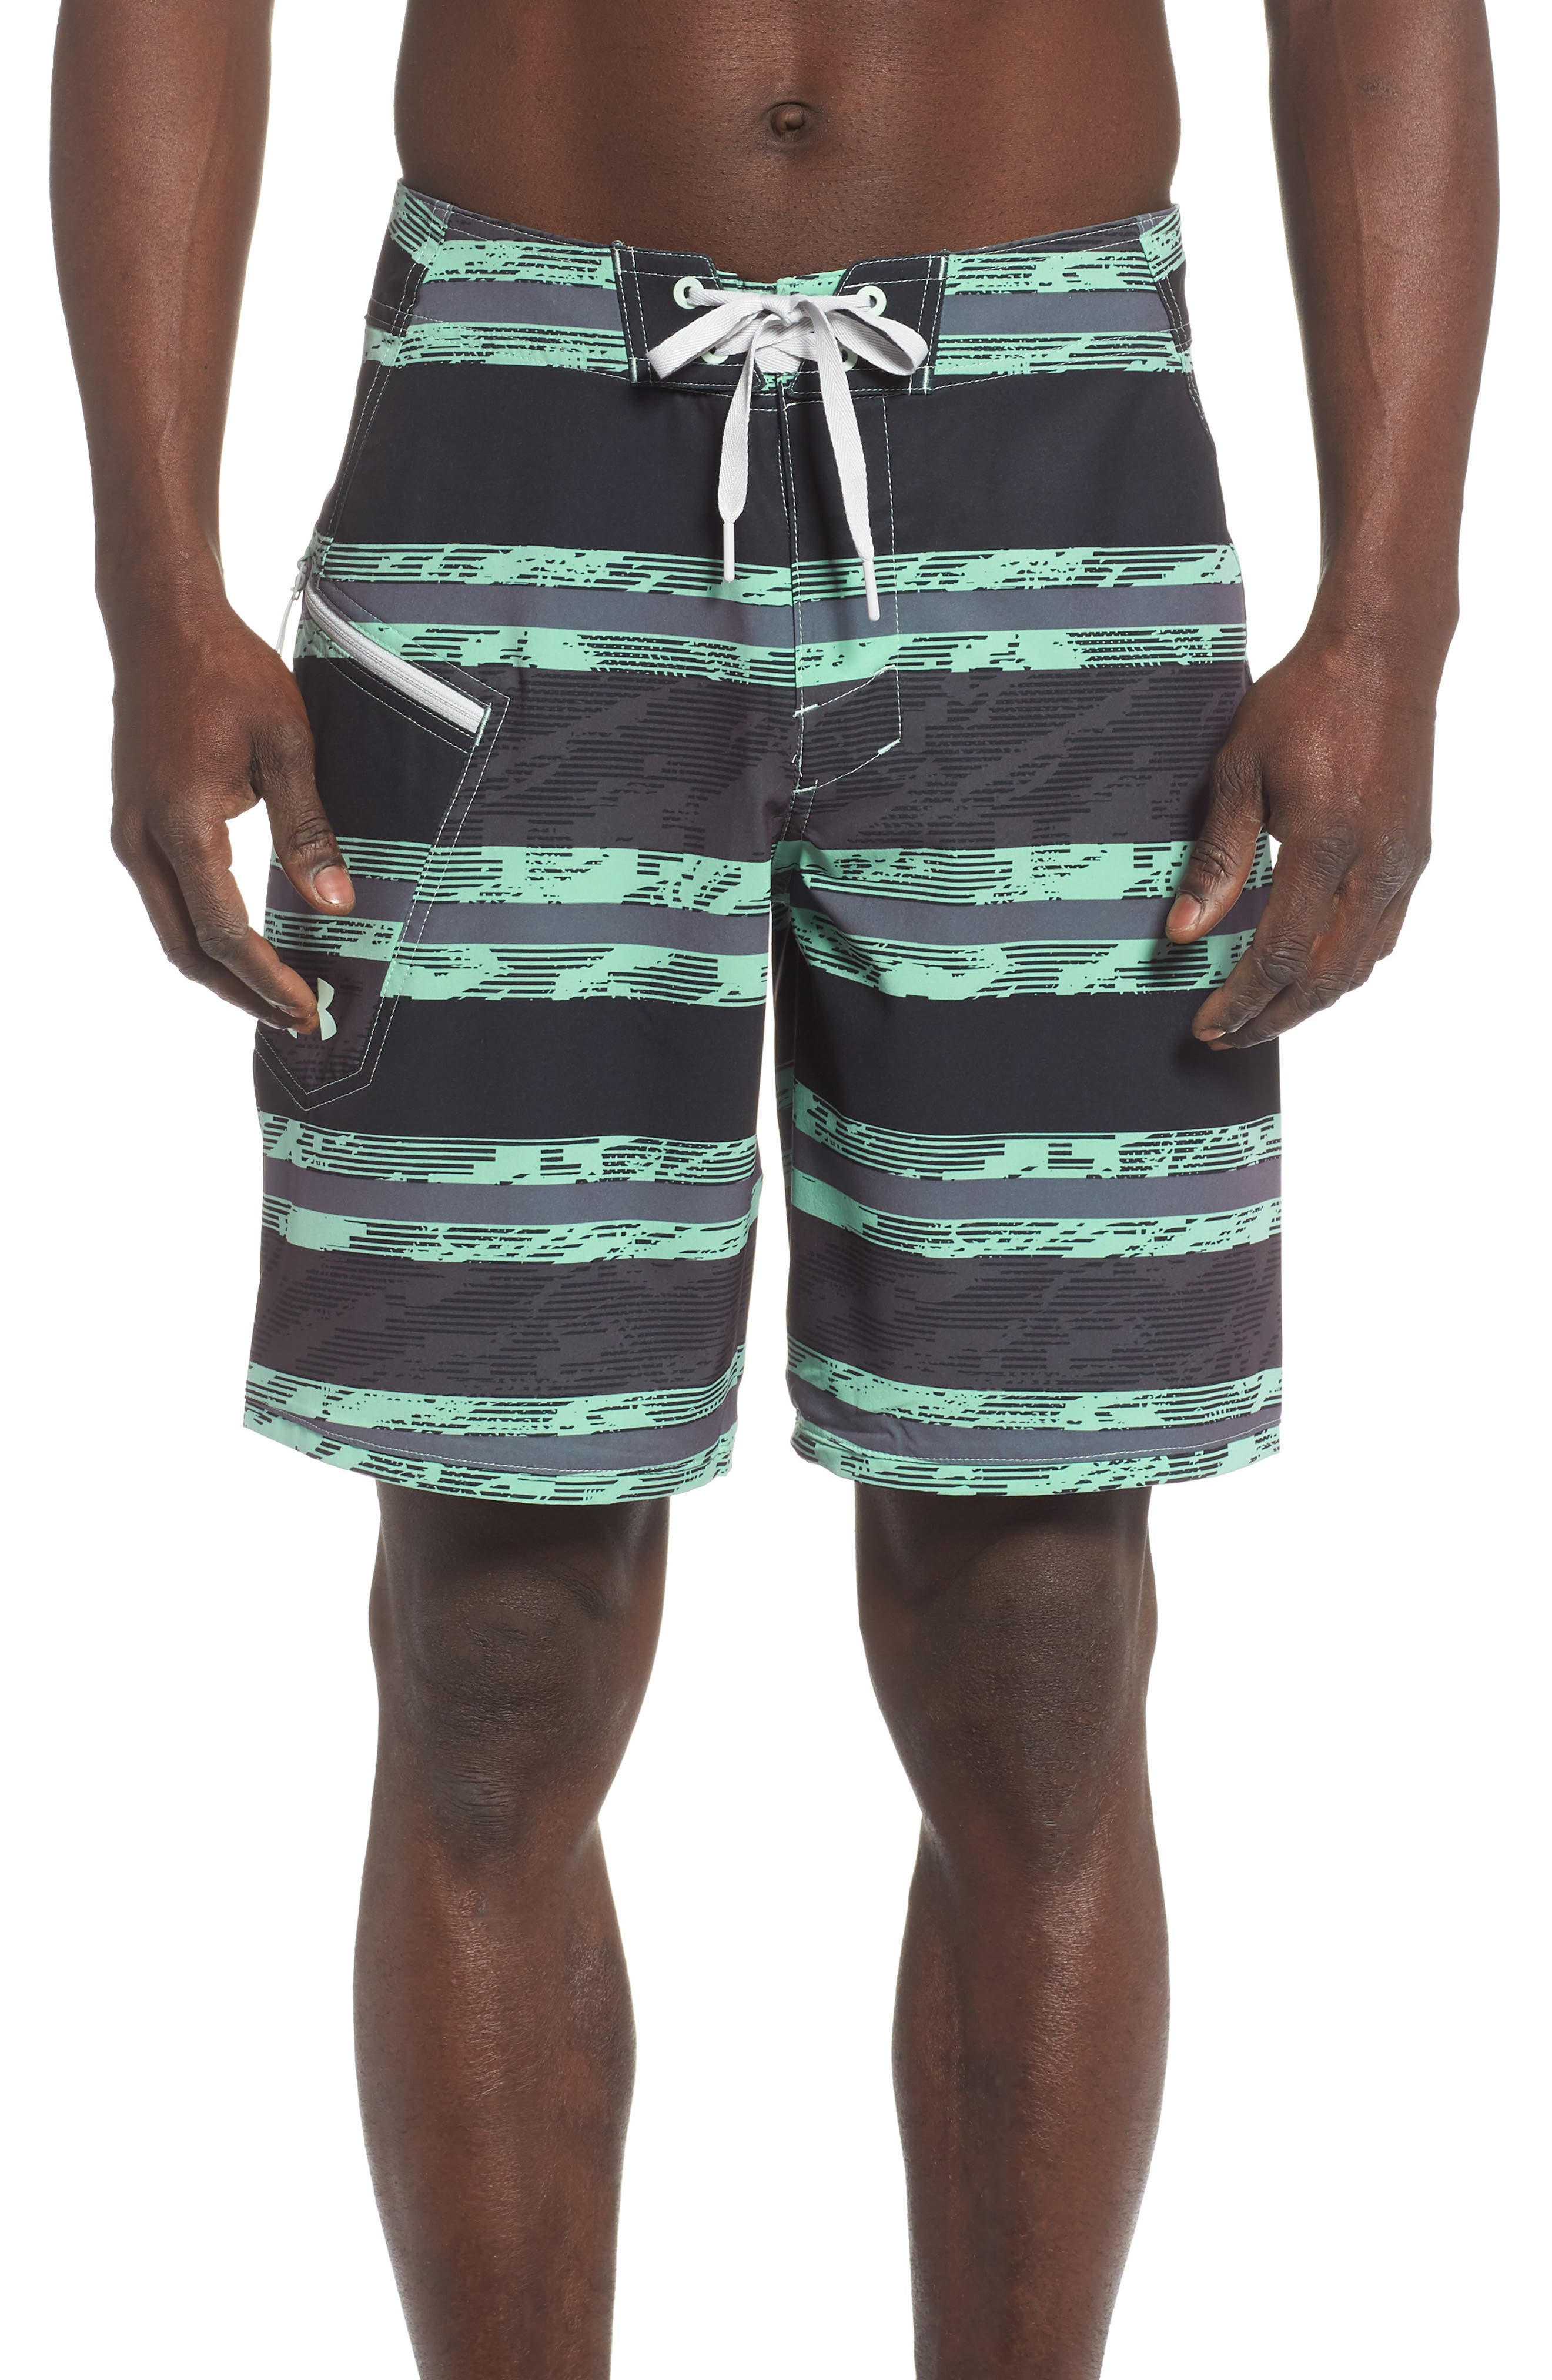 Under Armour Tide Chaser Board Shorts, Green